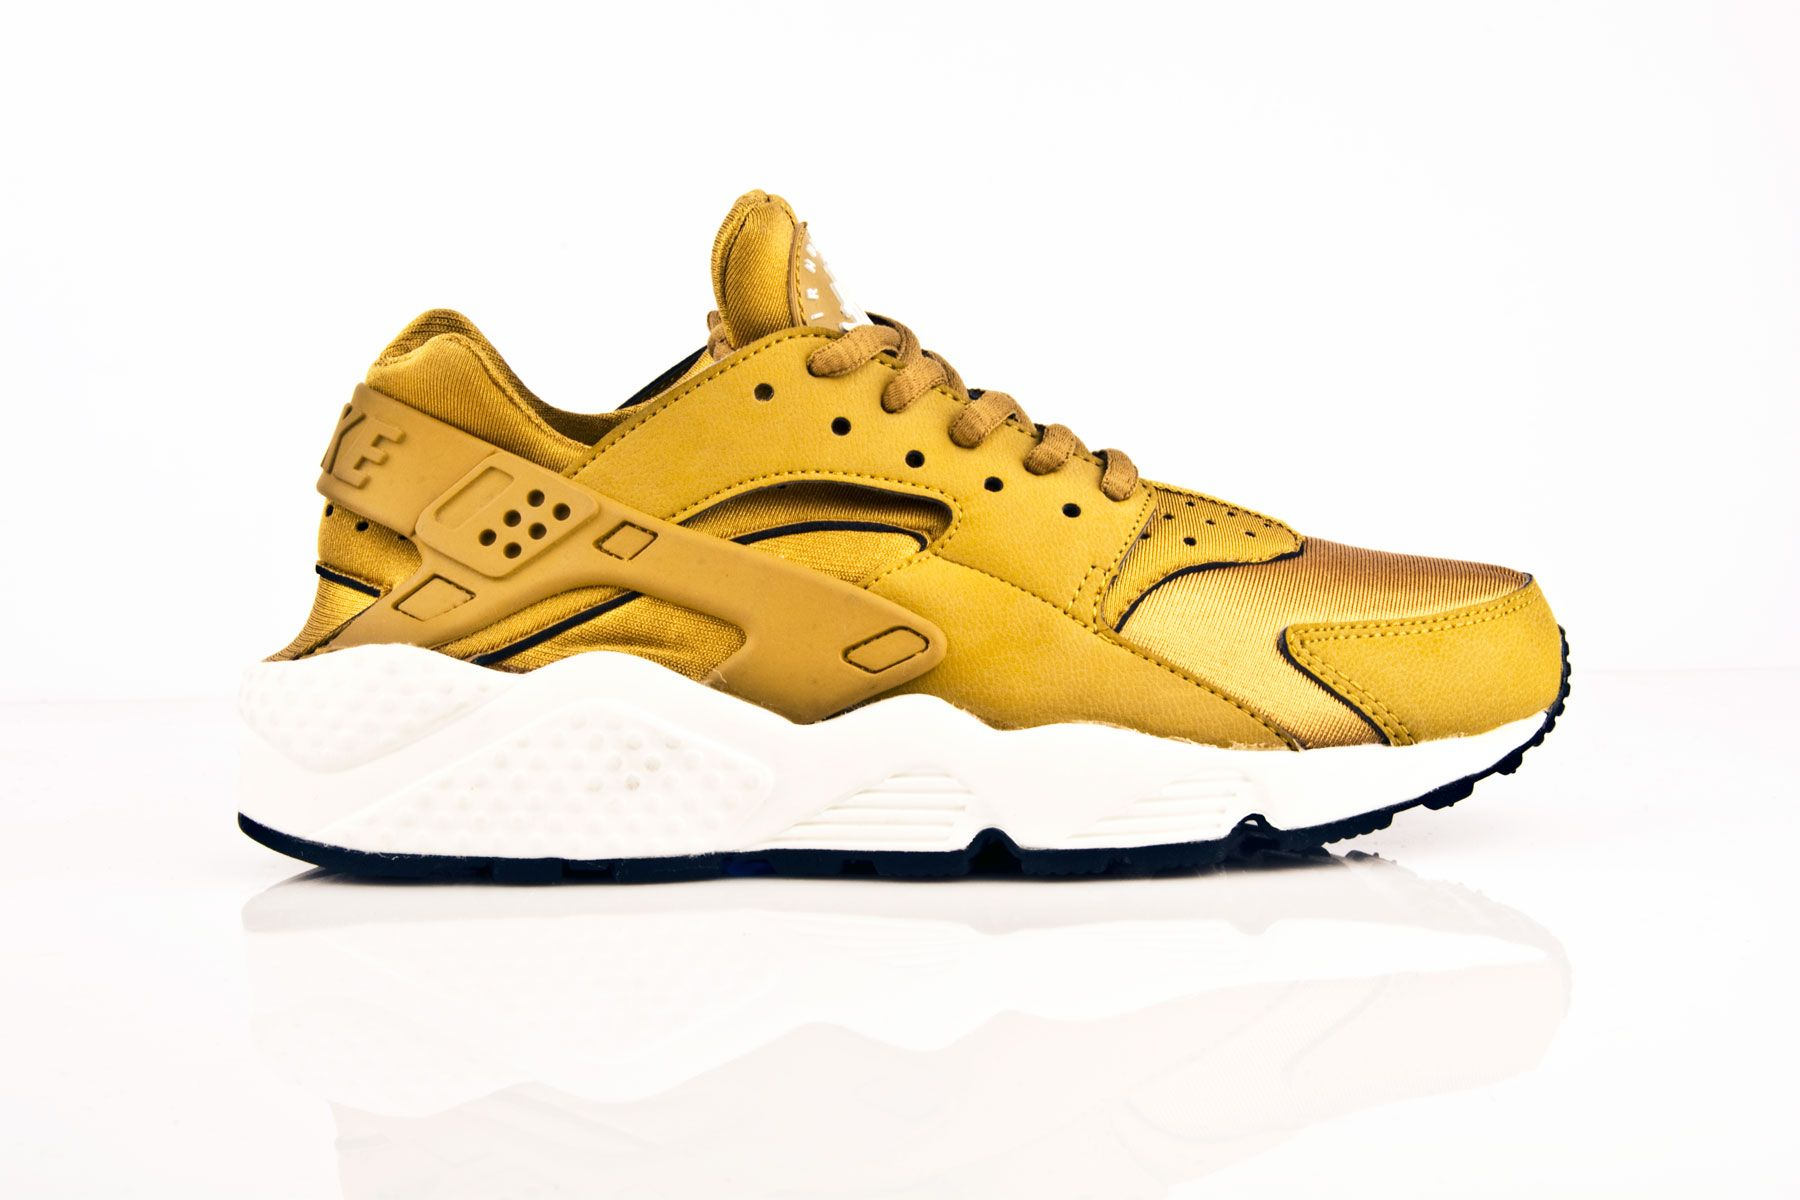 c0c8e098074c You are at  Home » Nike » Nike Air Huarache Gold – Guld Sneaks ...